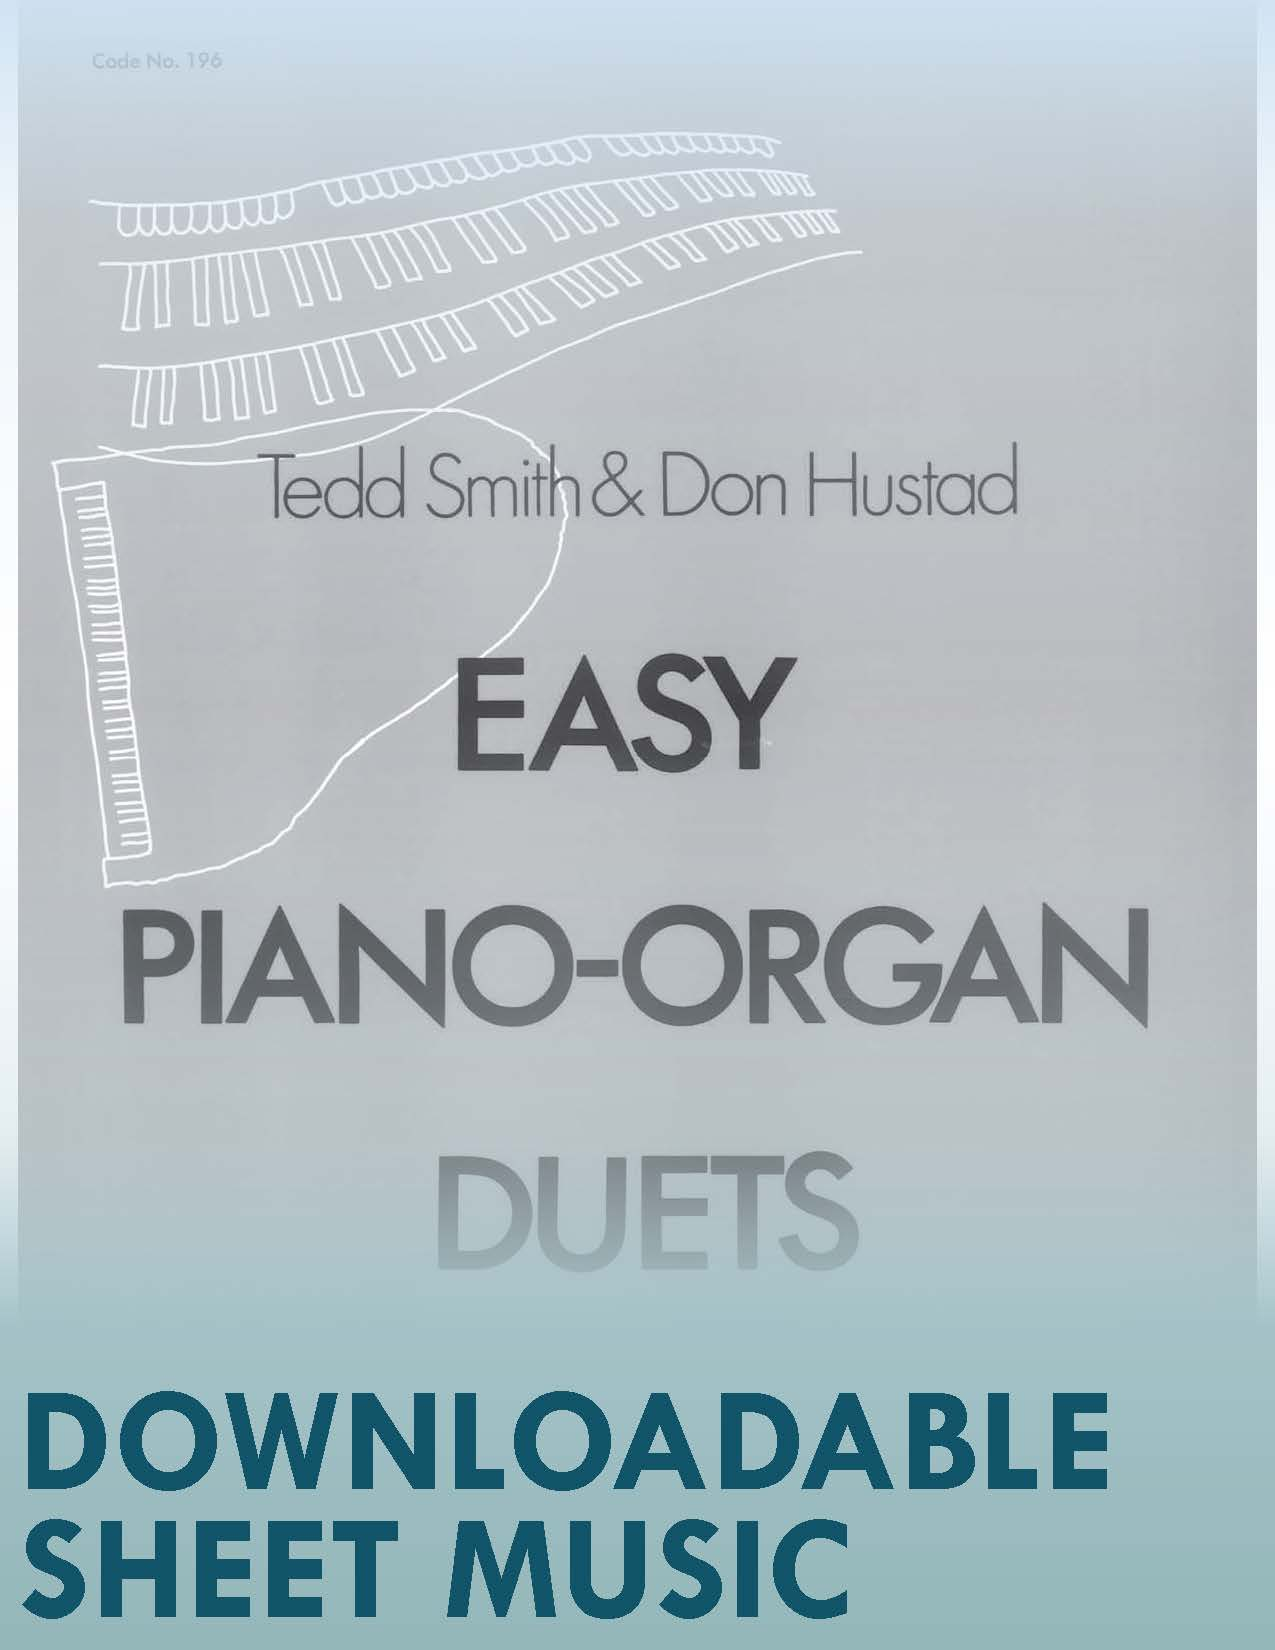 Easy Piano-Organ Duets (Digital Download)